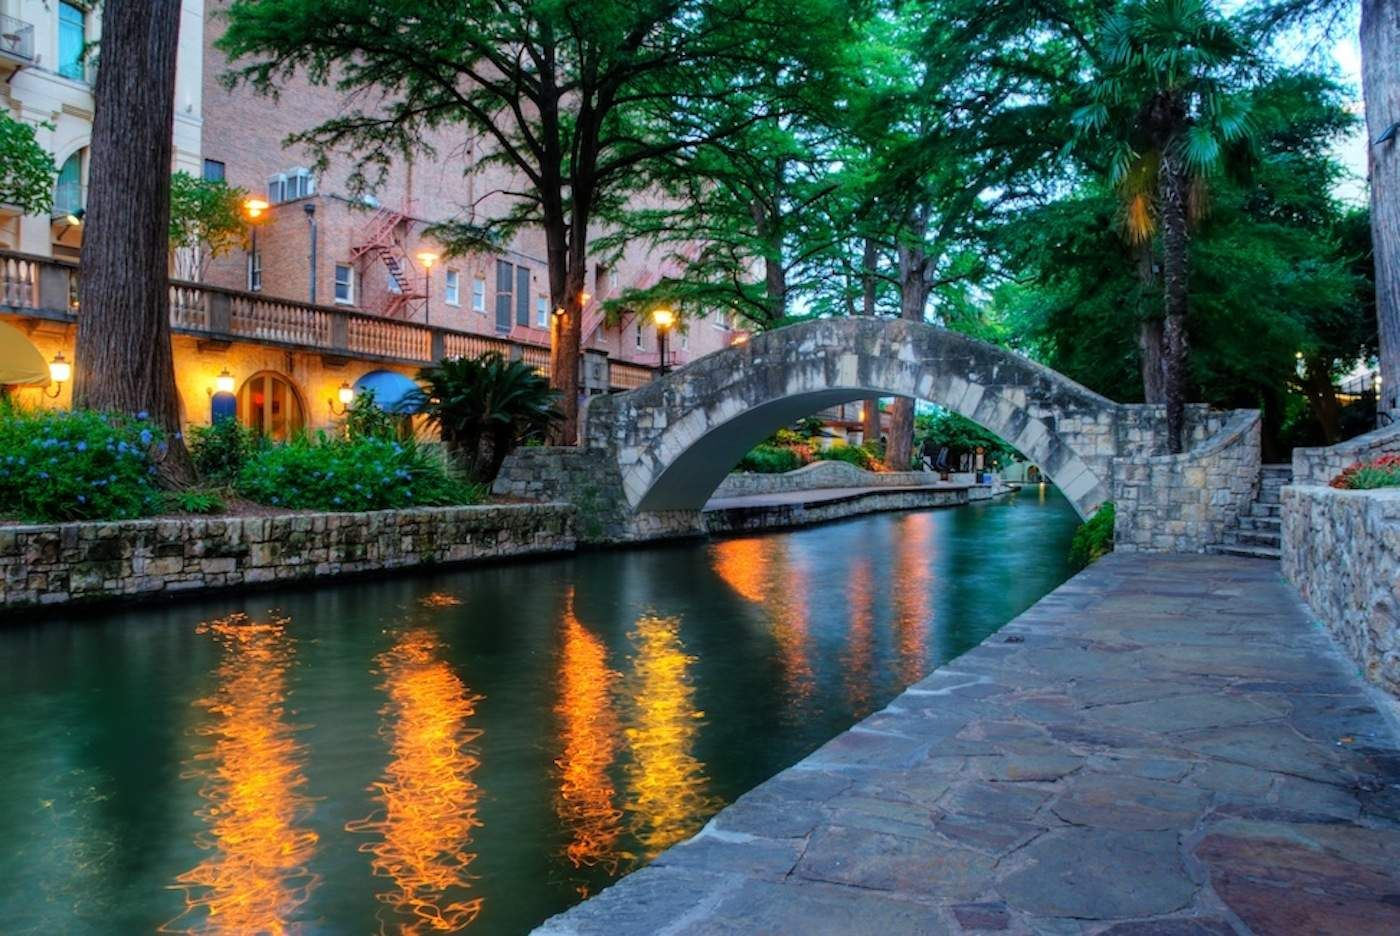 17 Best ideas about Downtown San Antonio on Pinterest San